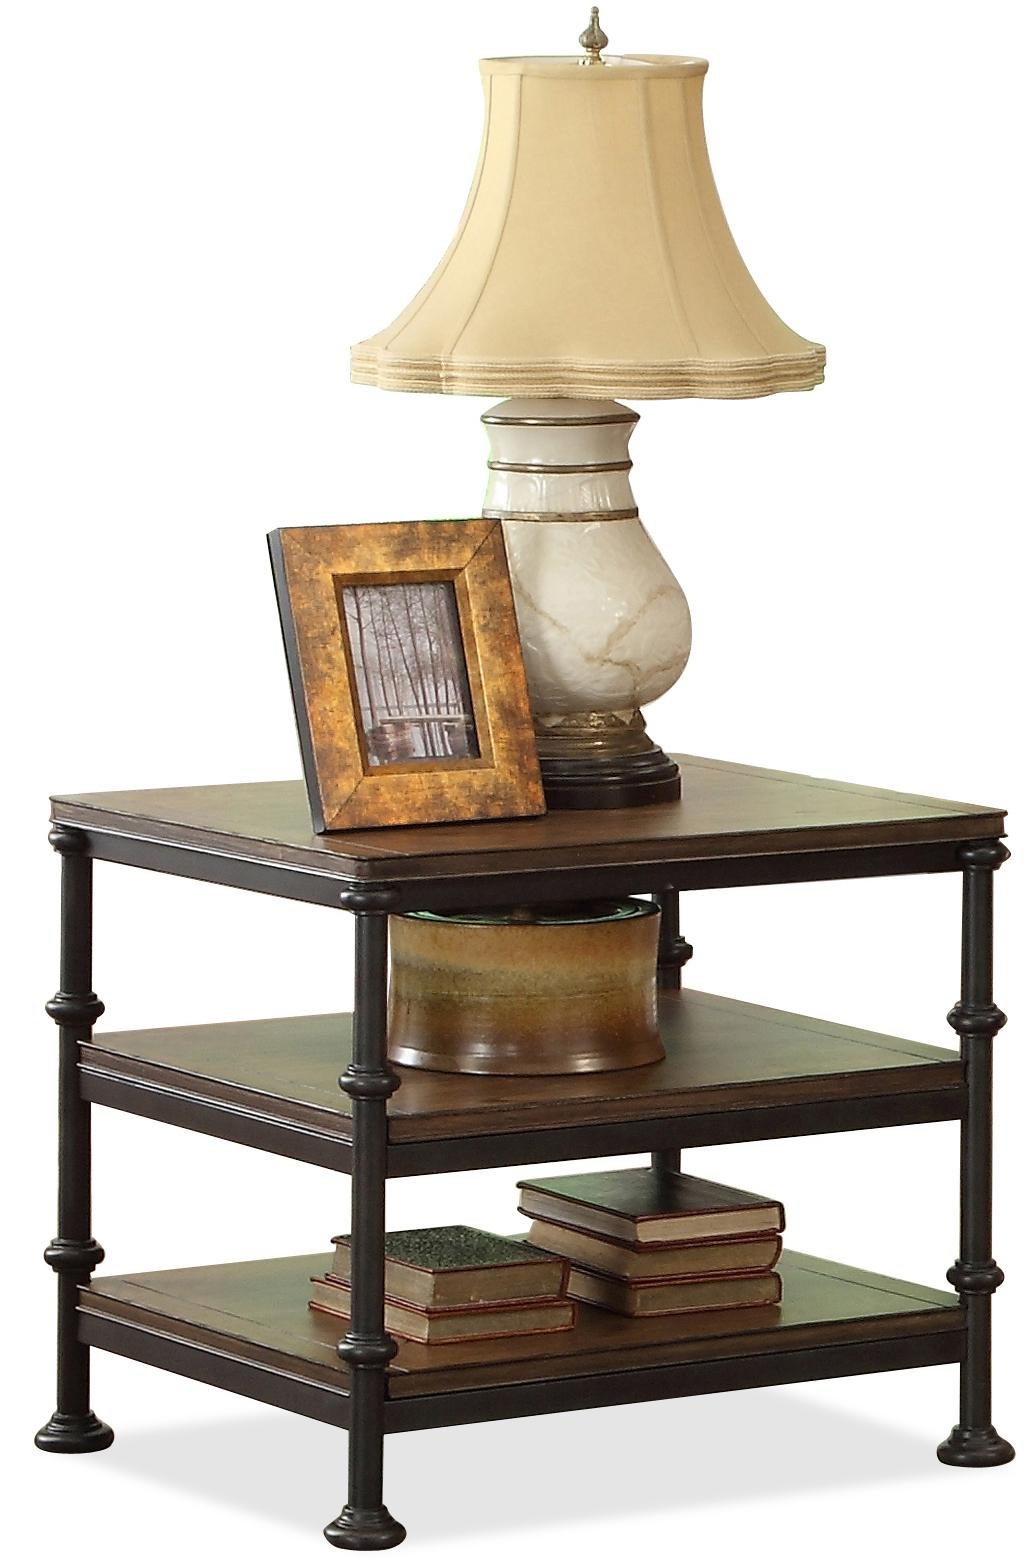 rectangular end table with 2 shelves by riverside furniture wolf and gardiner wolf furniture. Black Bedroom Furniture Sets. Home Design Ideas